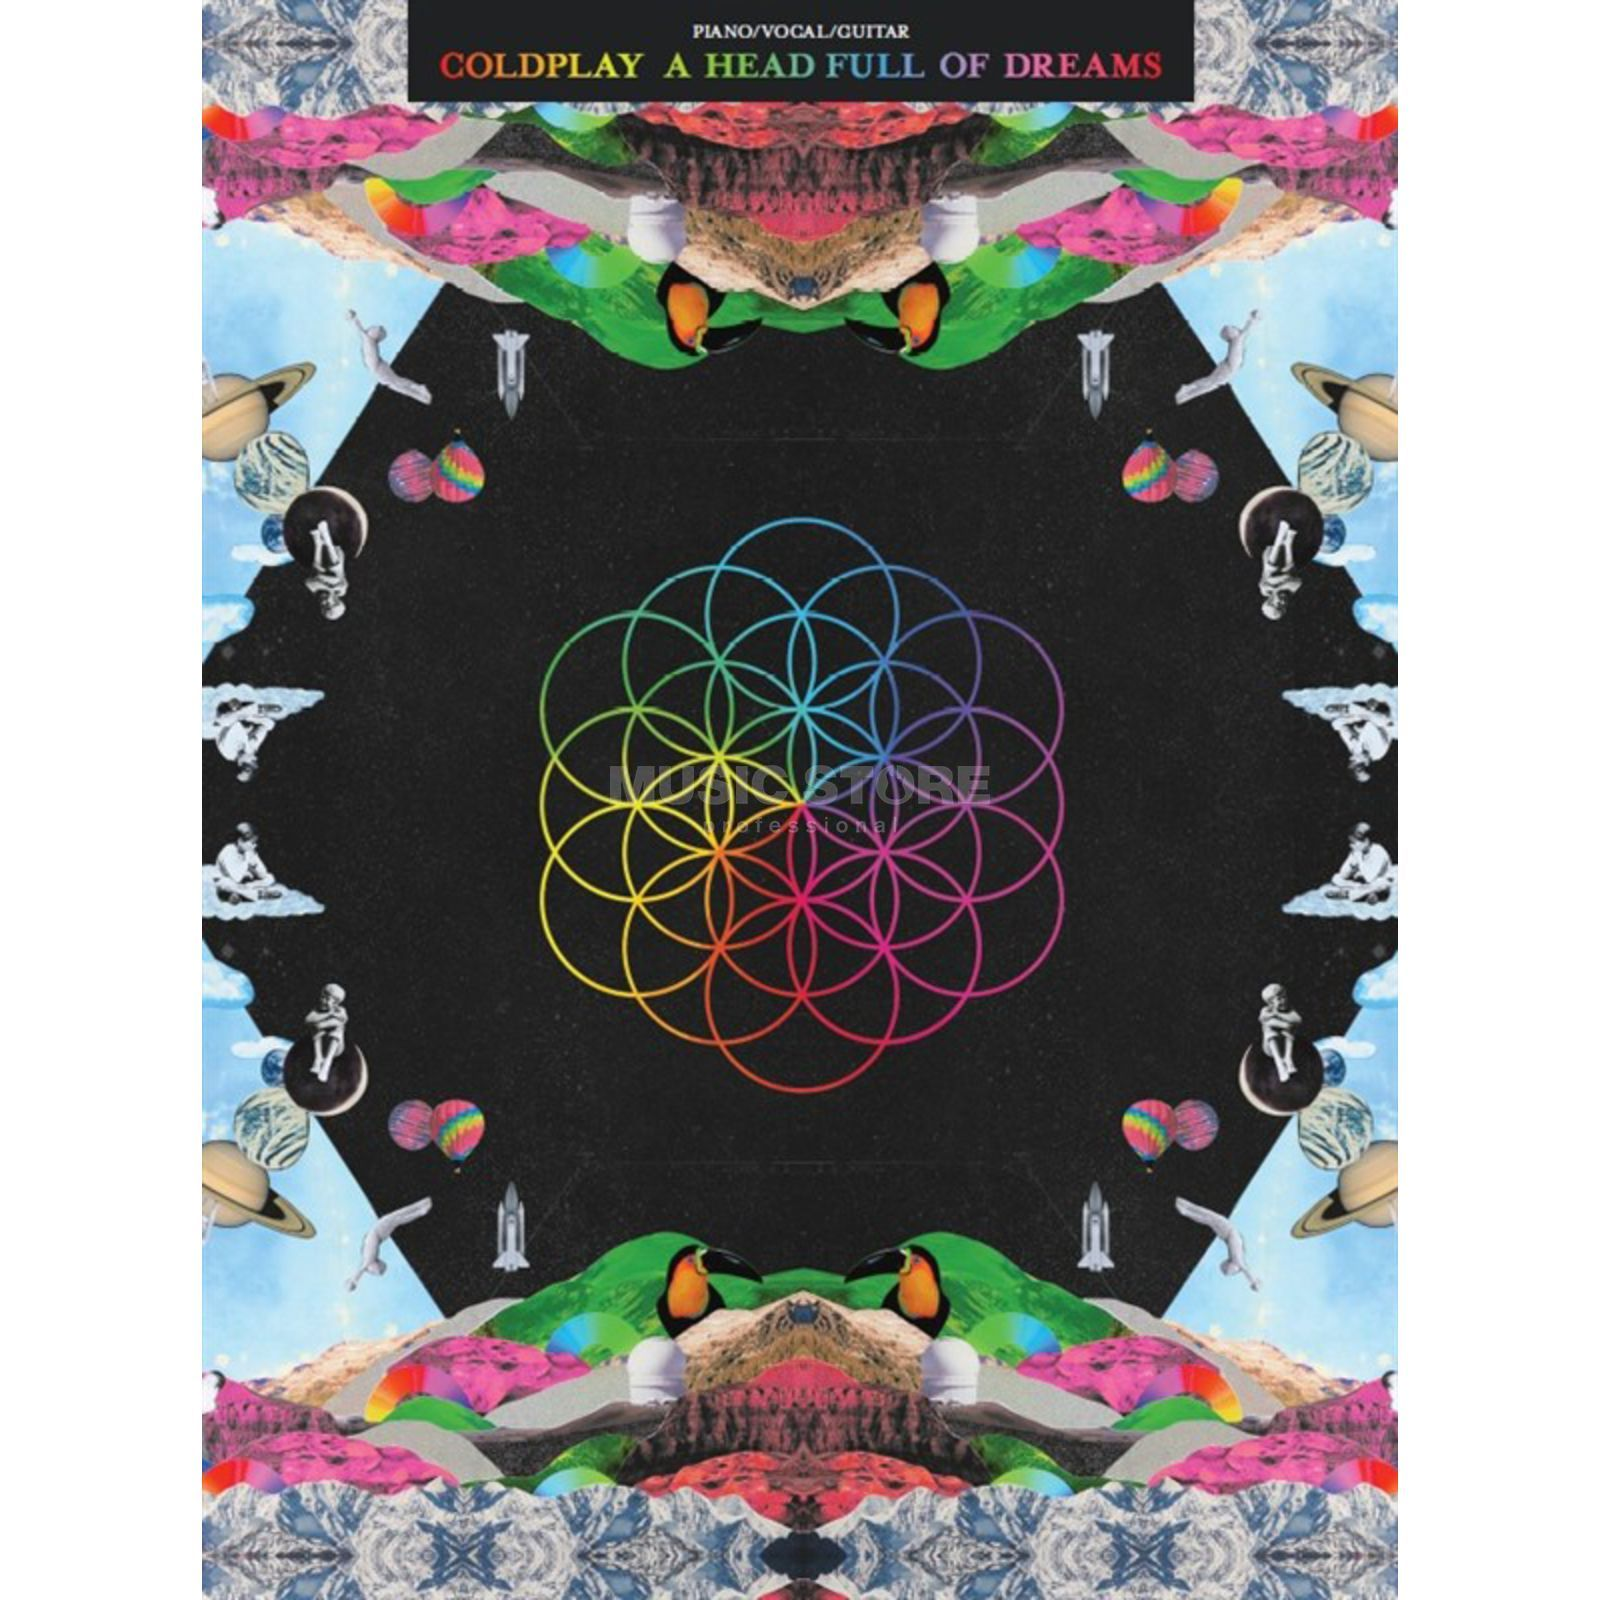 Wise Publications Coldplay: A Head Full Of Dreams Imagen del producto